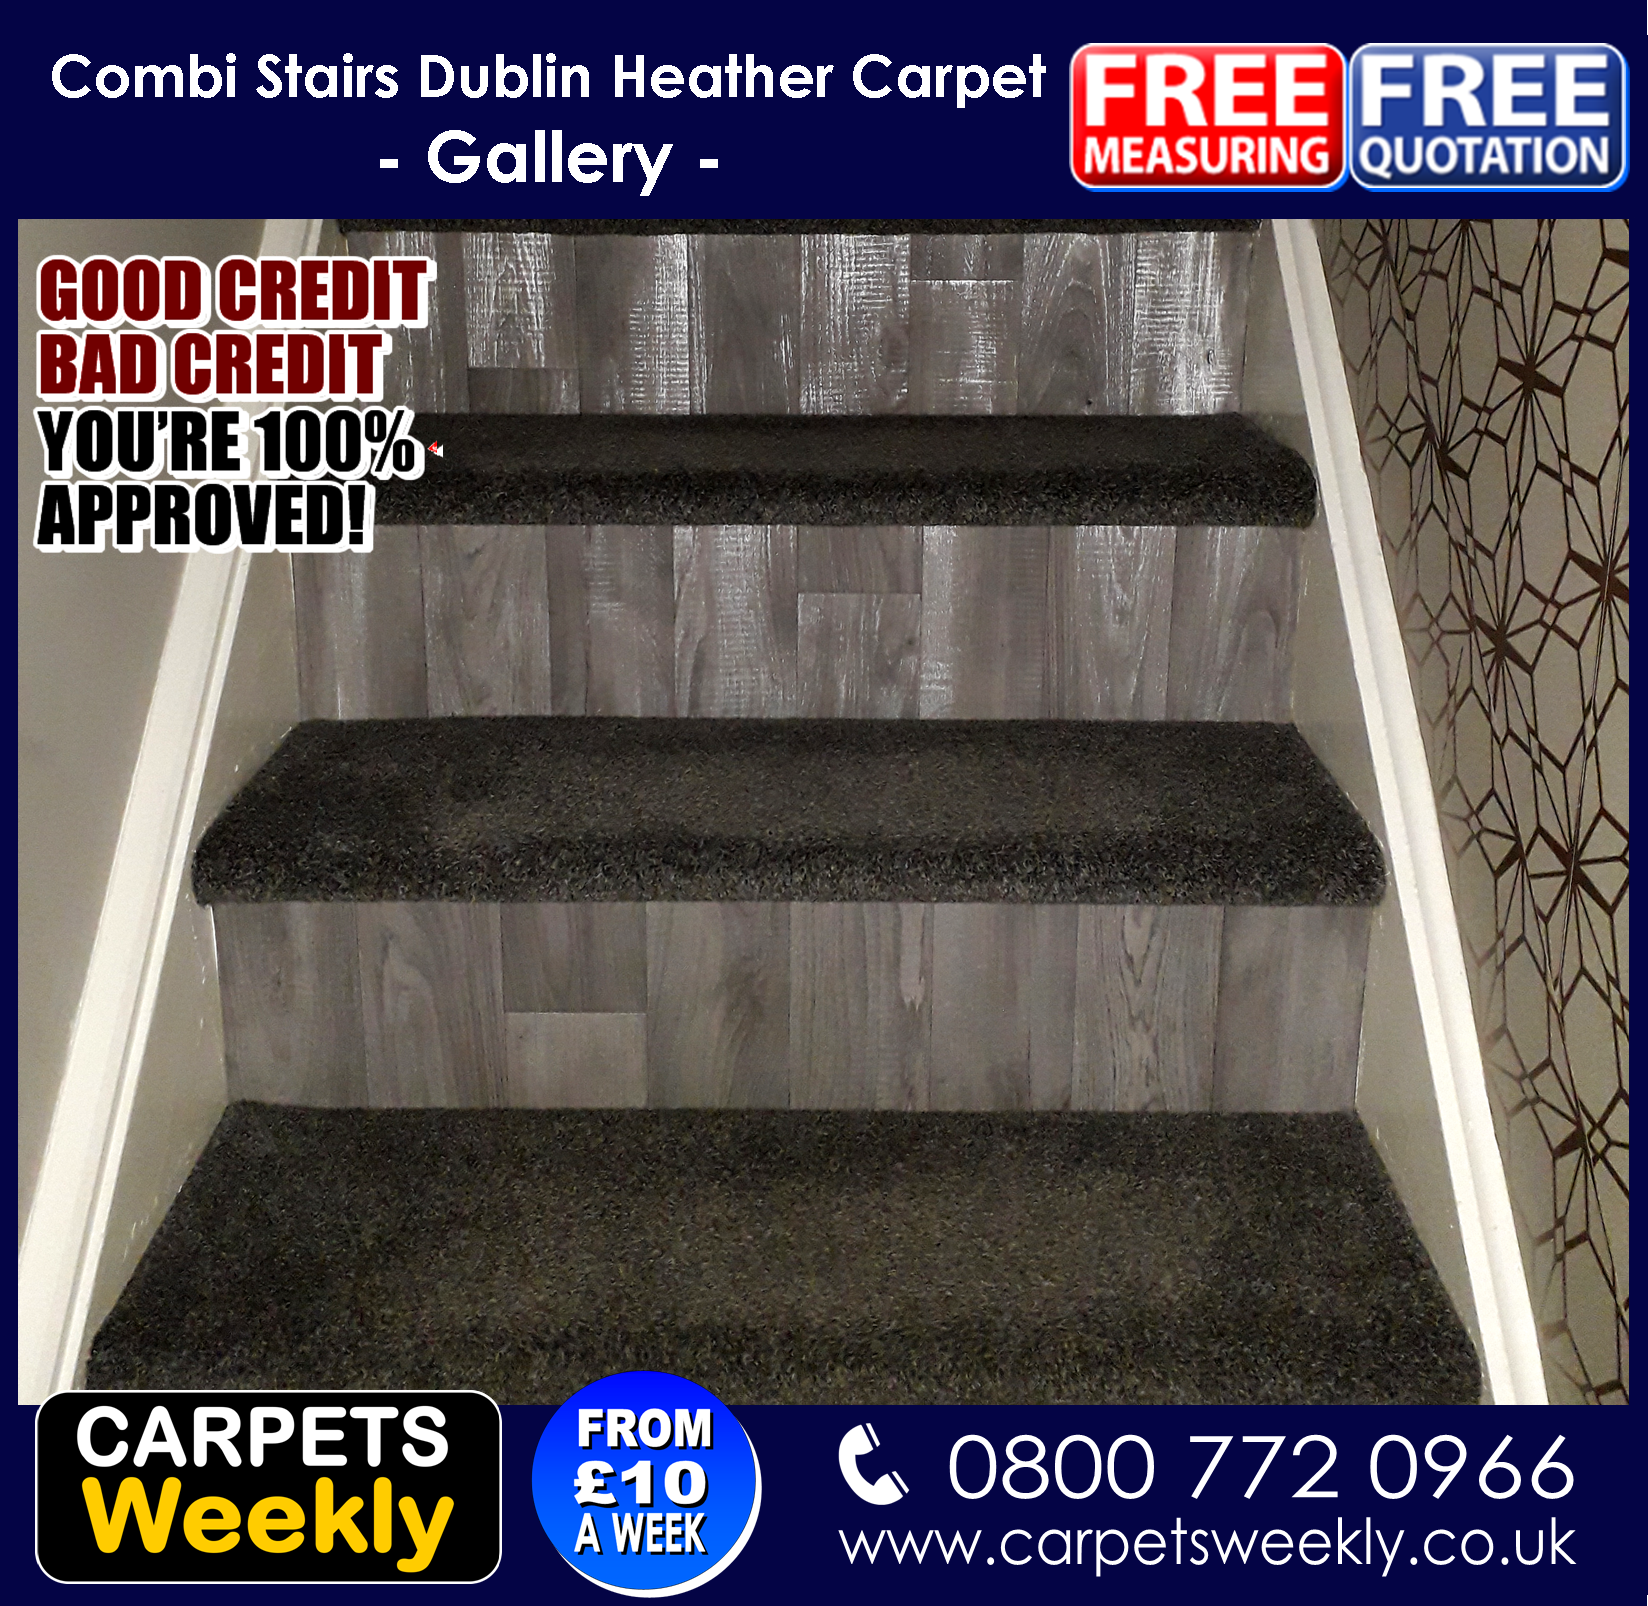 Top Saxony and Sandiargo Vinyl Combi Stairs (a)from Carpets Weekly